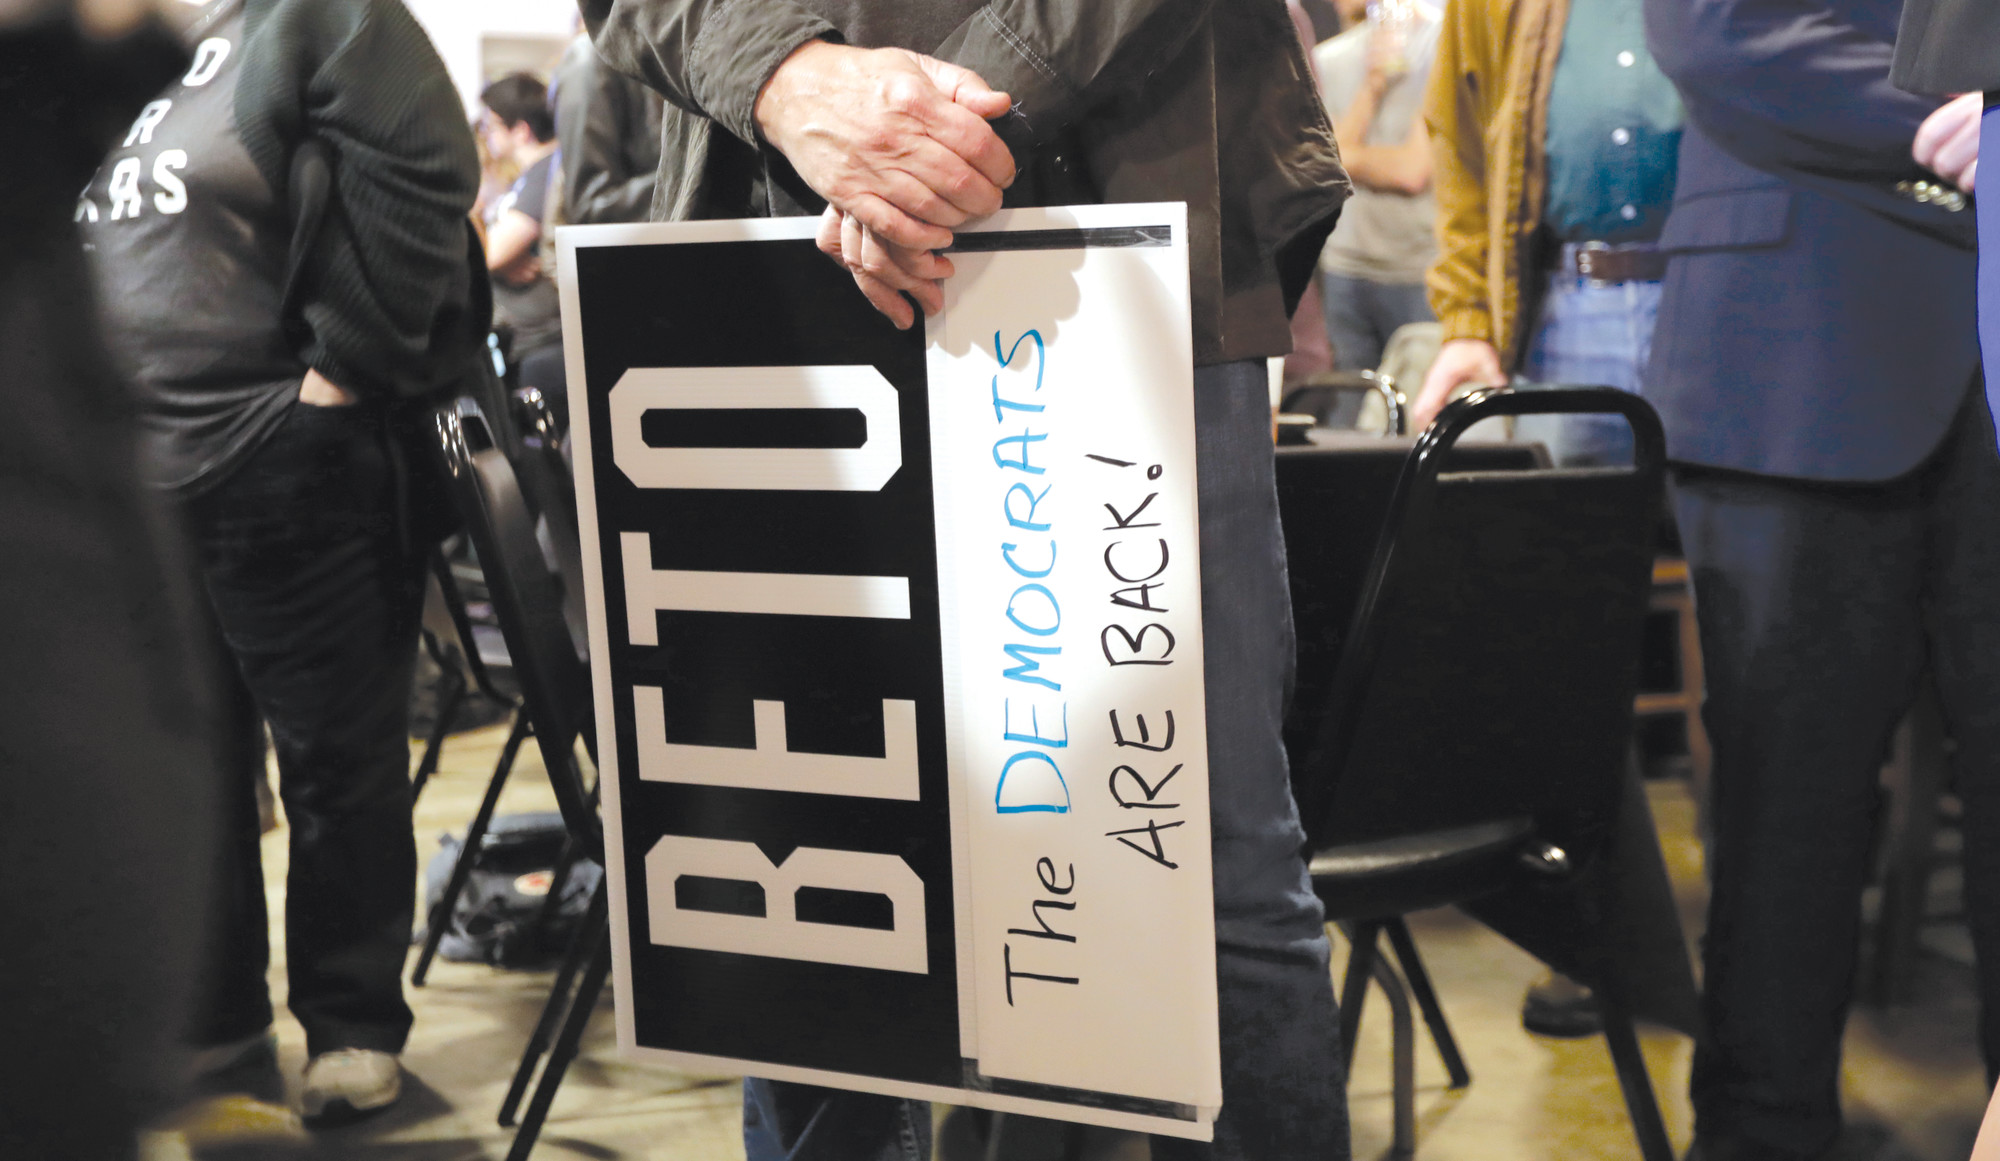 A supporter of senate hopeful Beto O'Rourke holds a sign during a Democratic watch party following the Texas primary election on Tuesday in Austin, Texas.